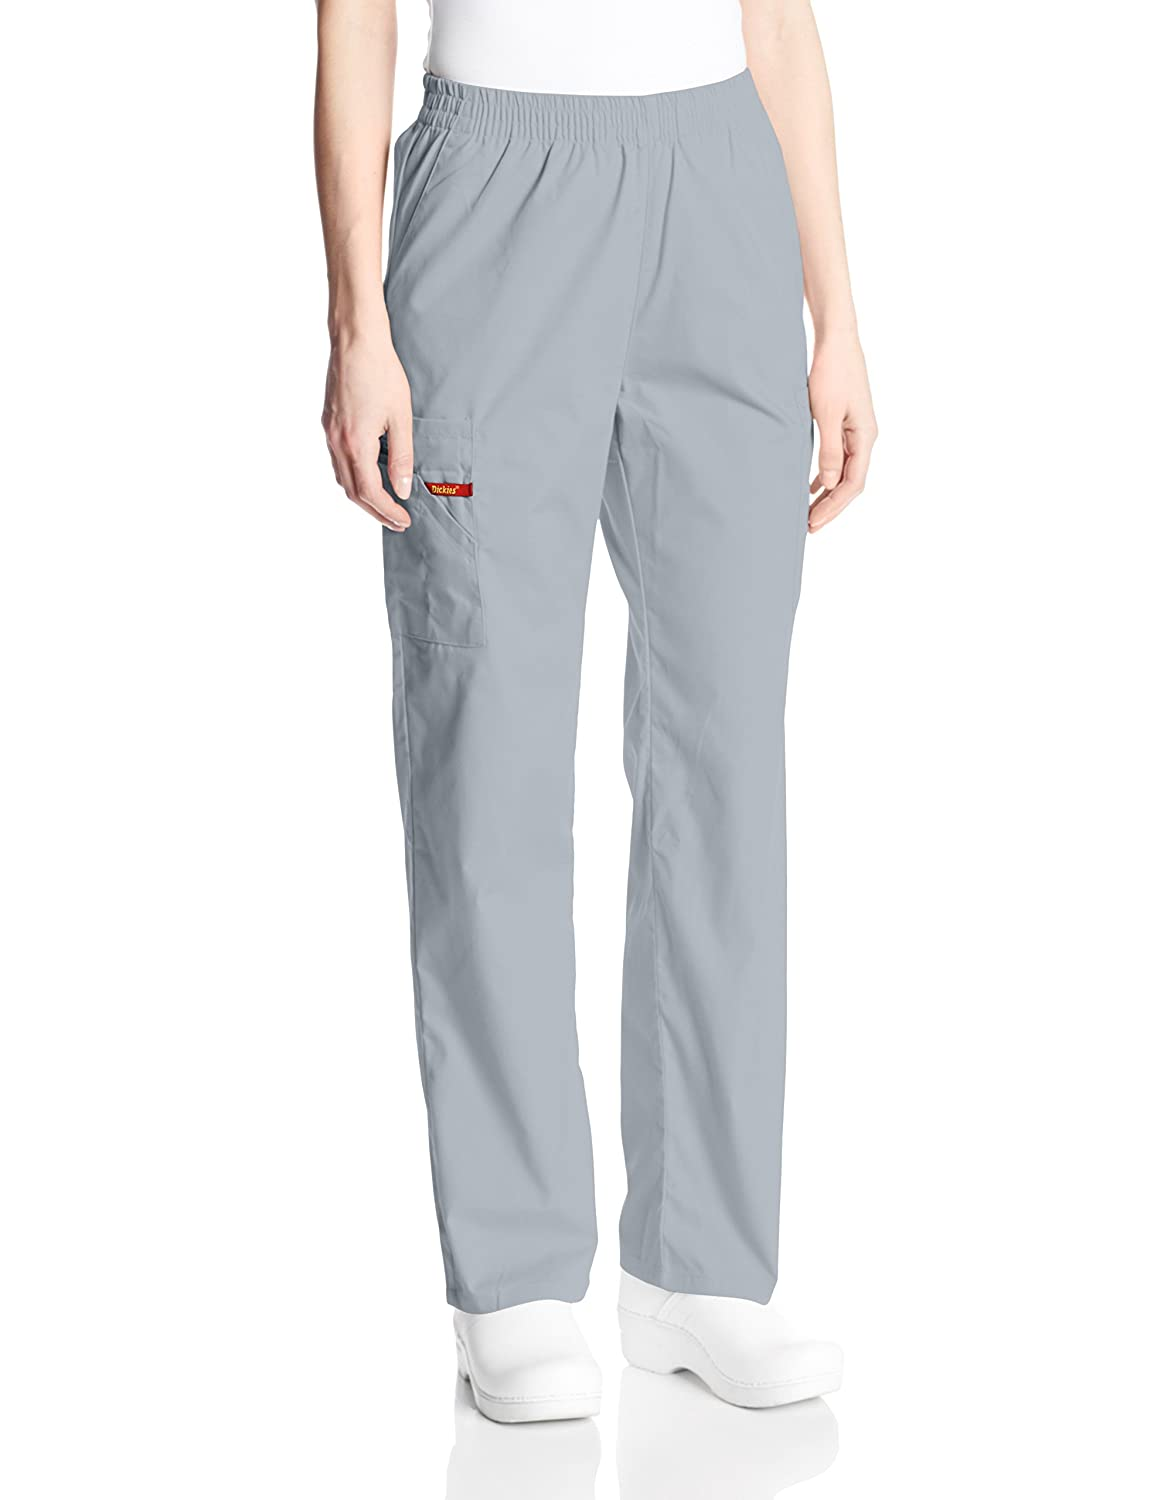 472967d1c0 Amazon.com: Dickies Women's 86106 Eds Signature Scrubs Missy Fit Pull-on Cargo  Pant: Medical Scrubs Pants: Clothing